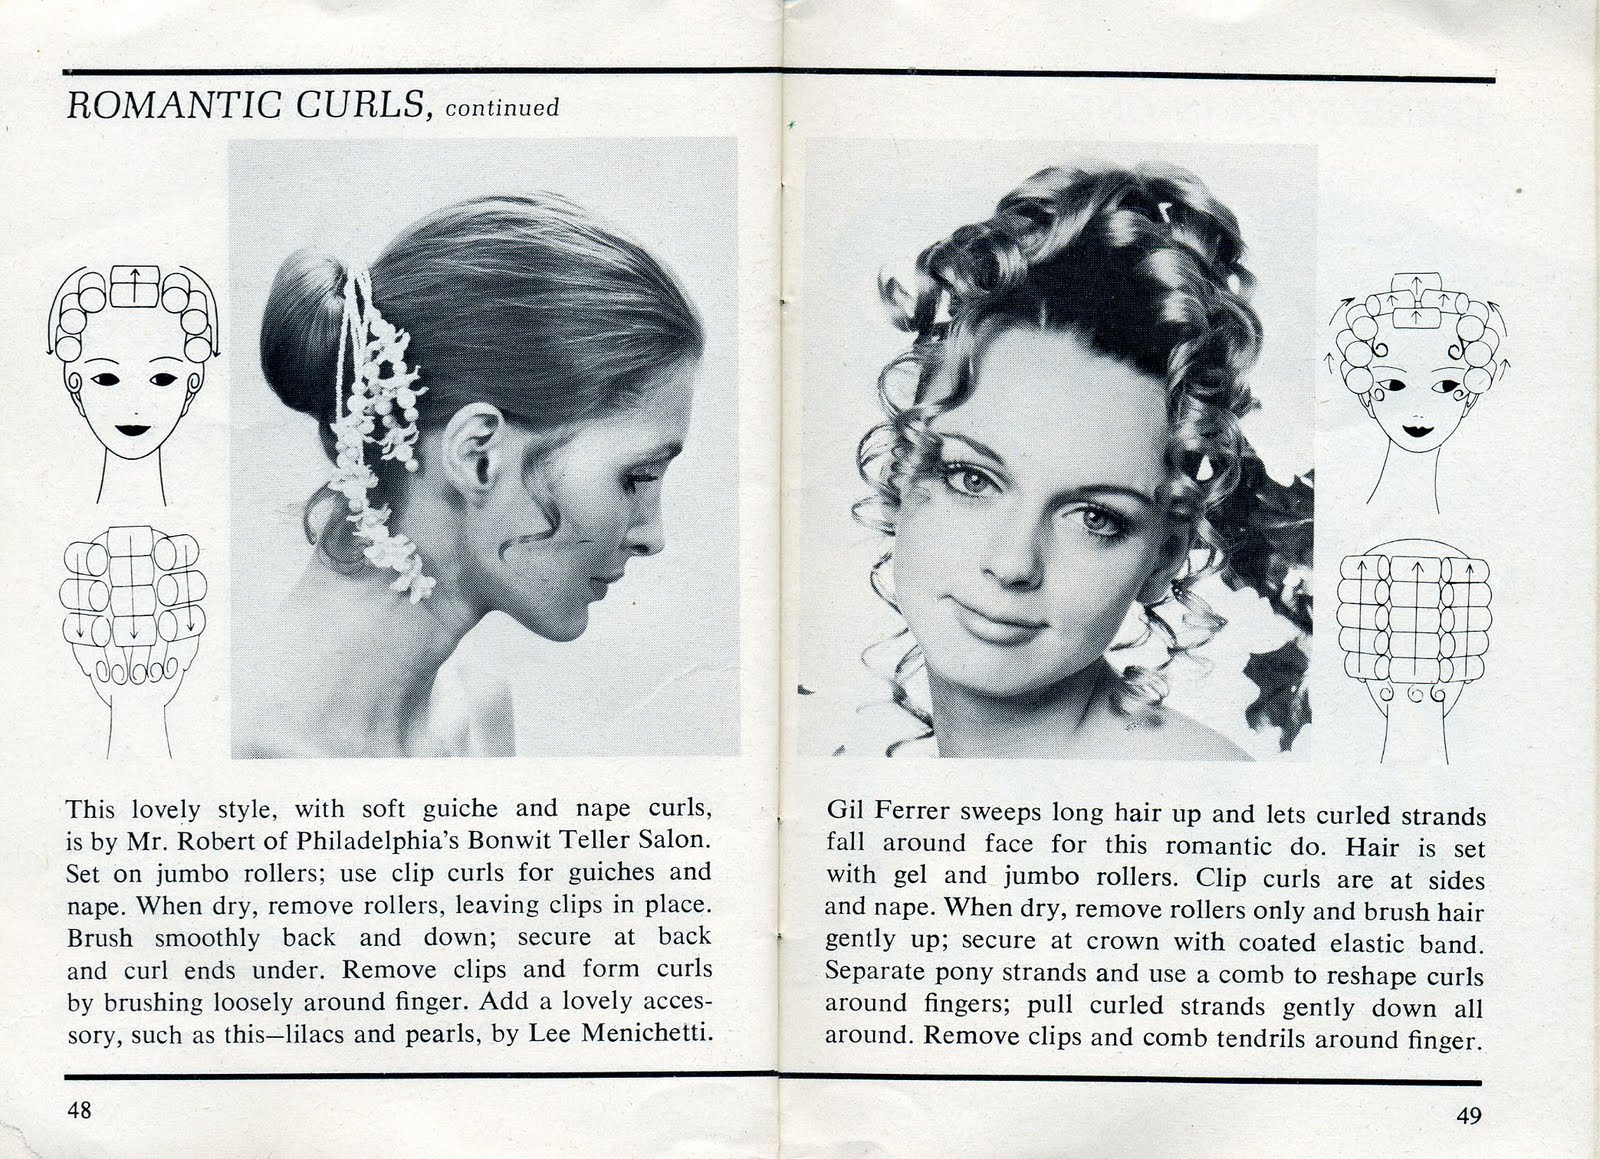 Beauty is a thing of the past: Romantic Curls